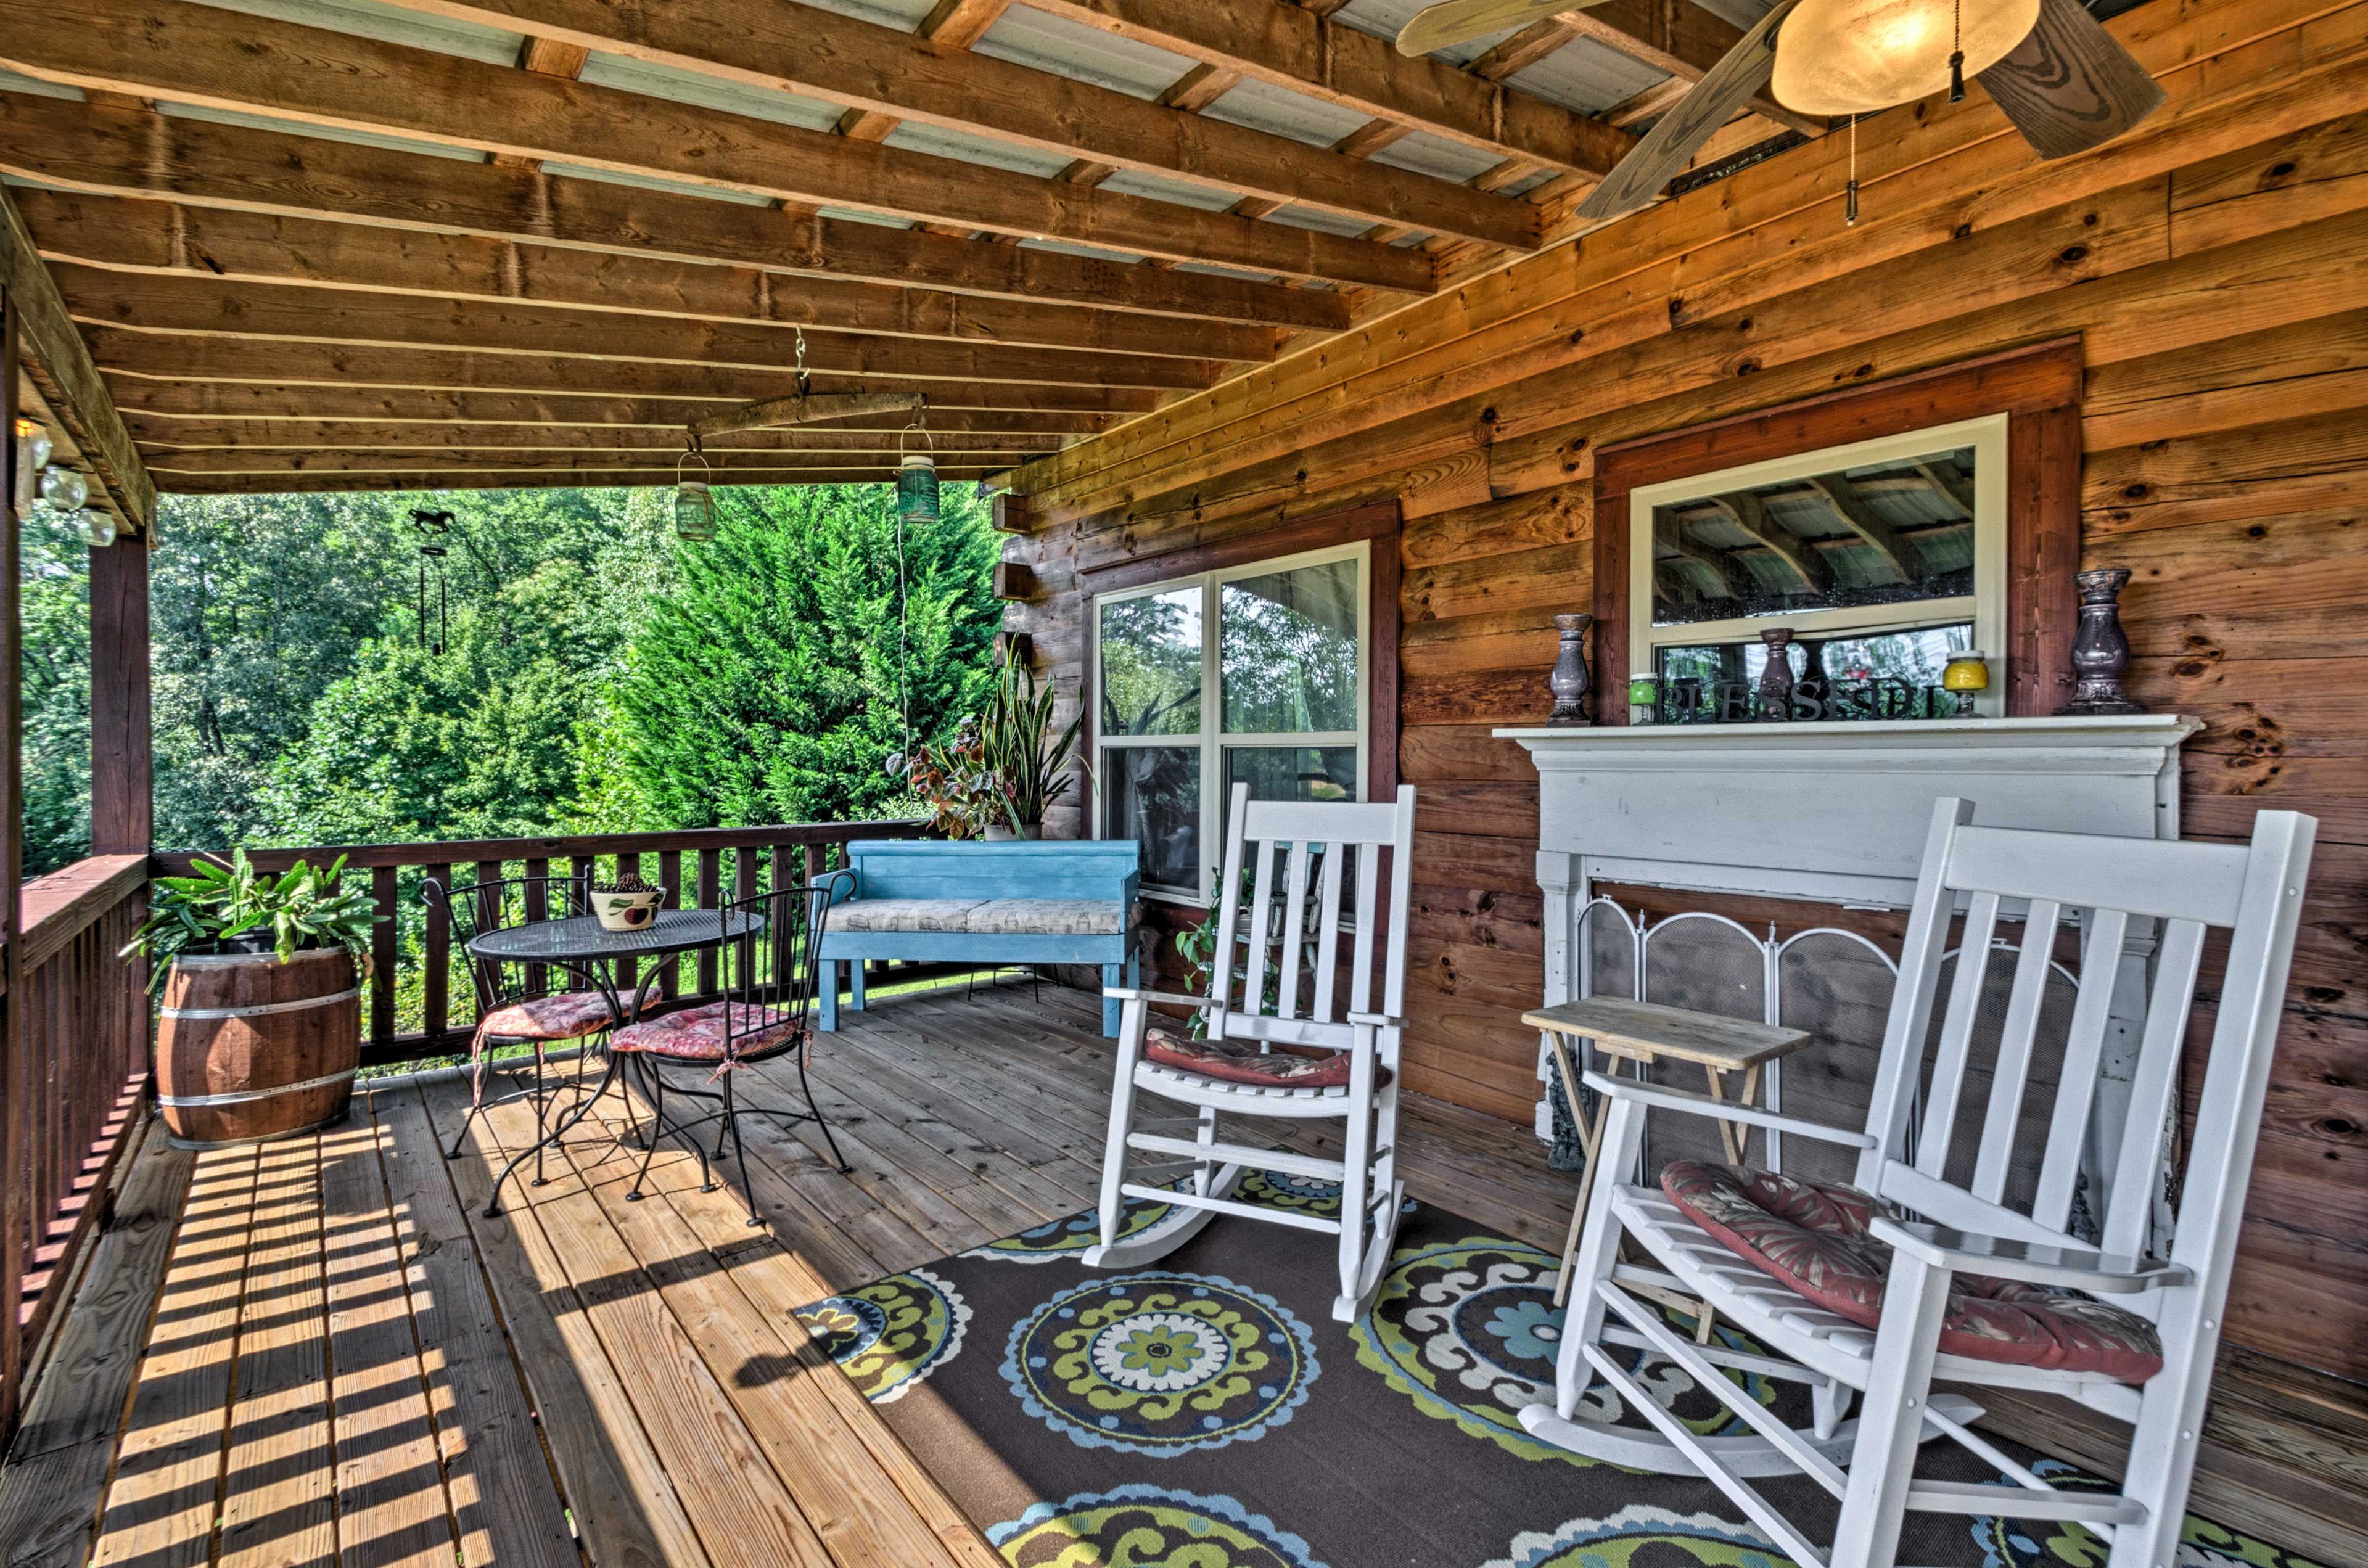 Sip your morning coffee on the covered deck to start your day.